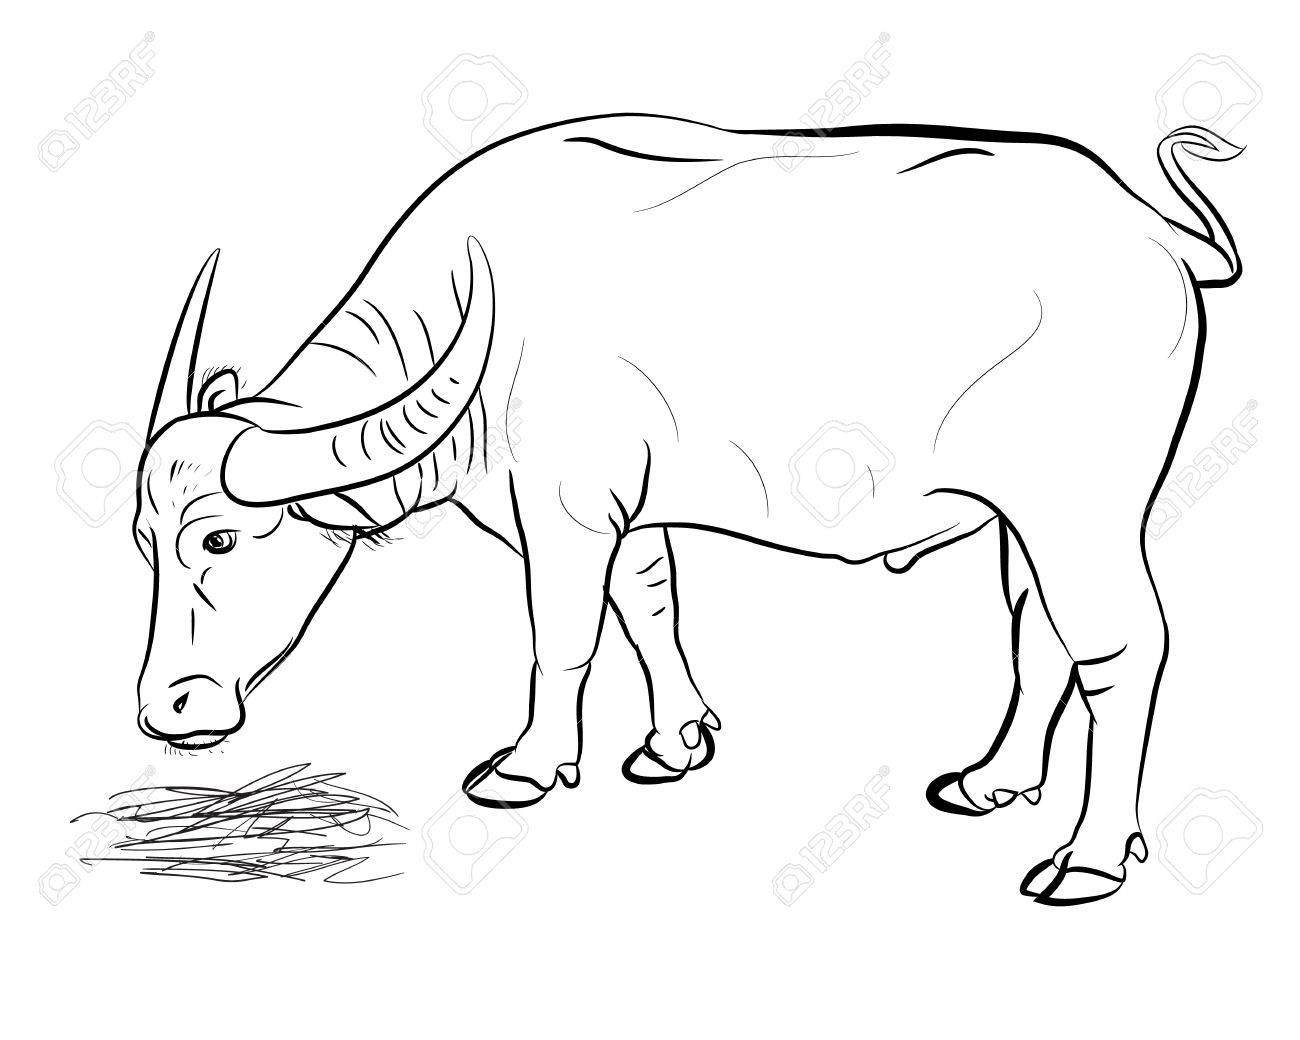 Vector of buffalo eating hay isolated on white baclground.